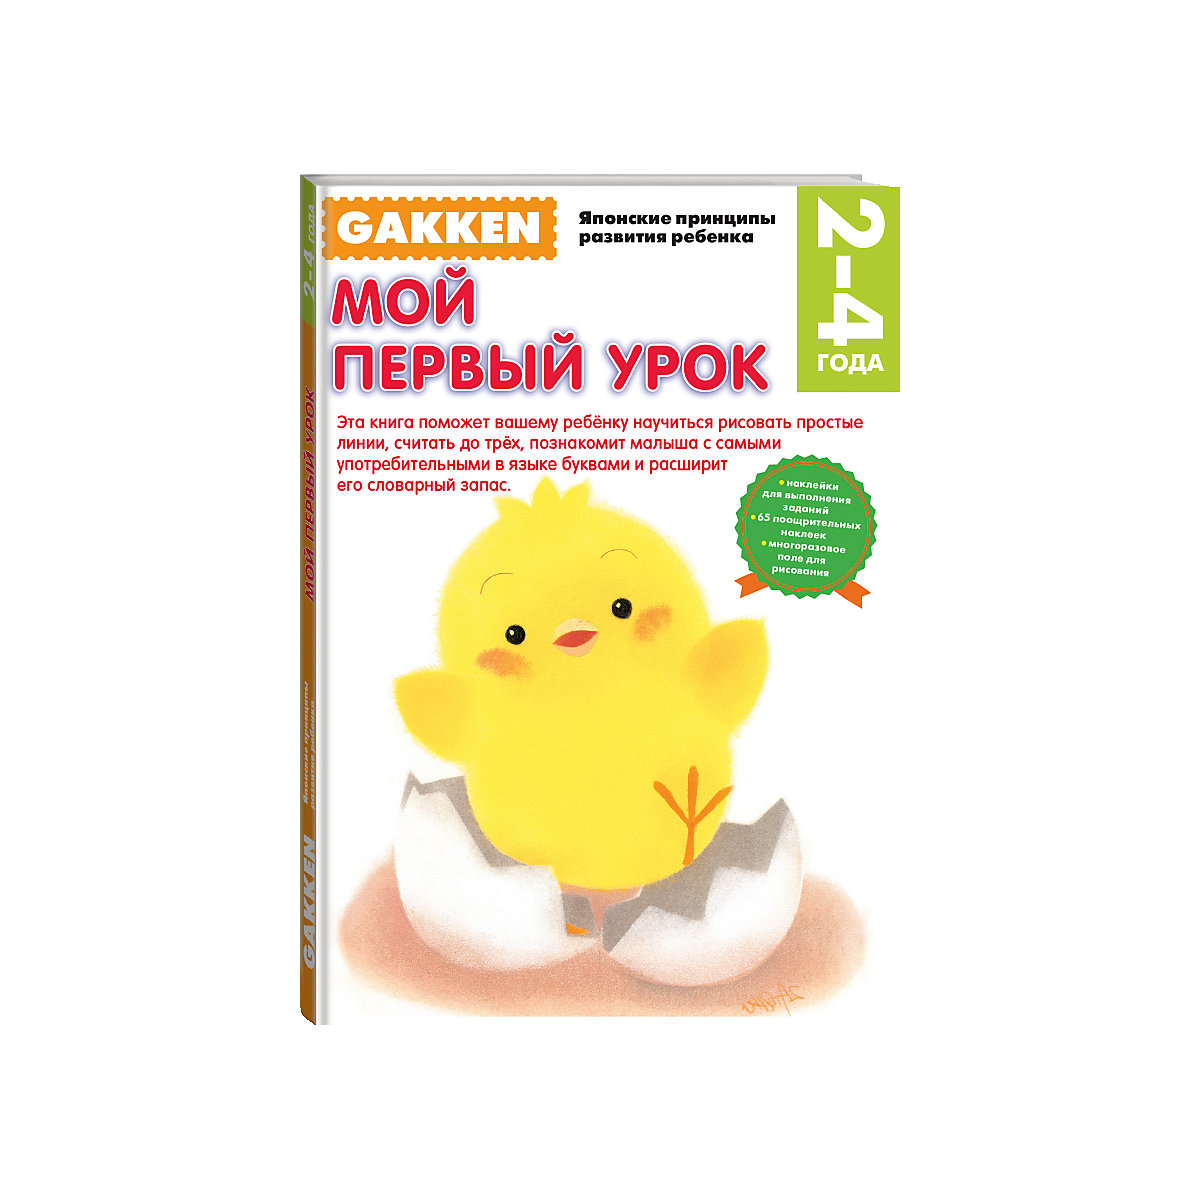 Books EKSMO 4753385 Children Education Encyclopedia Alphabet Dictionary Book For Baby MTpromo